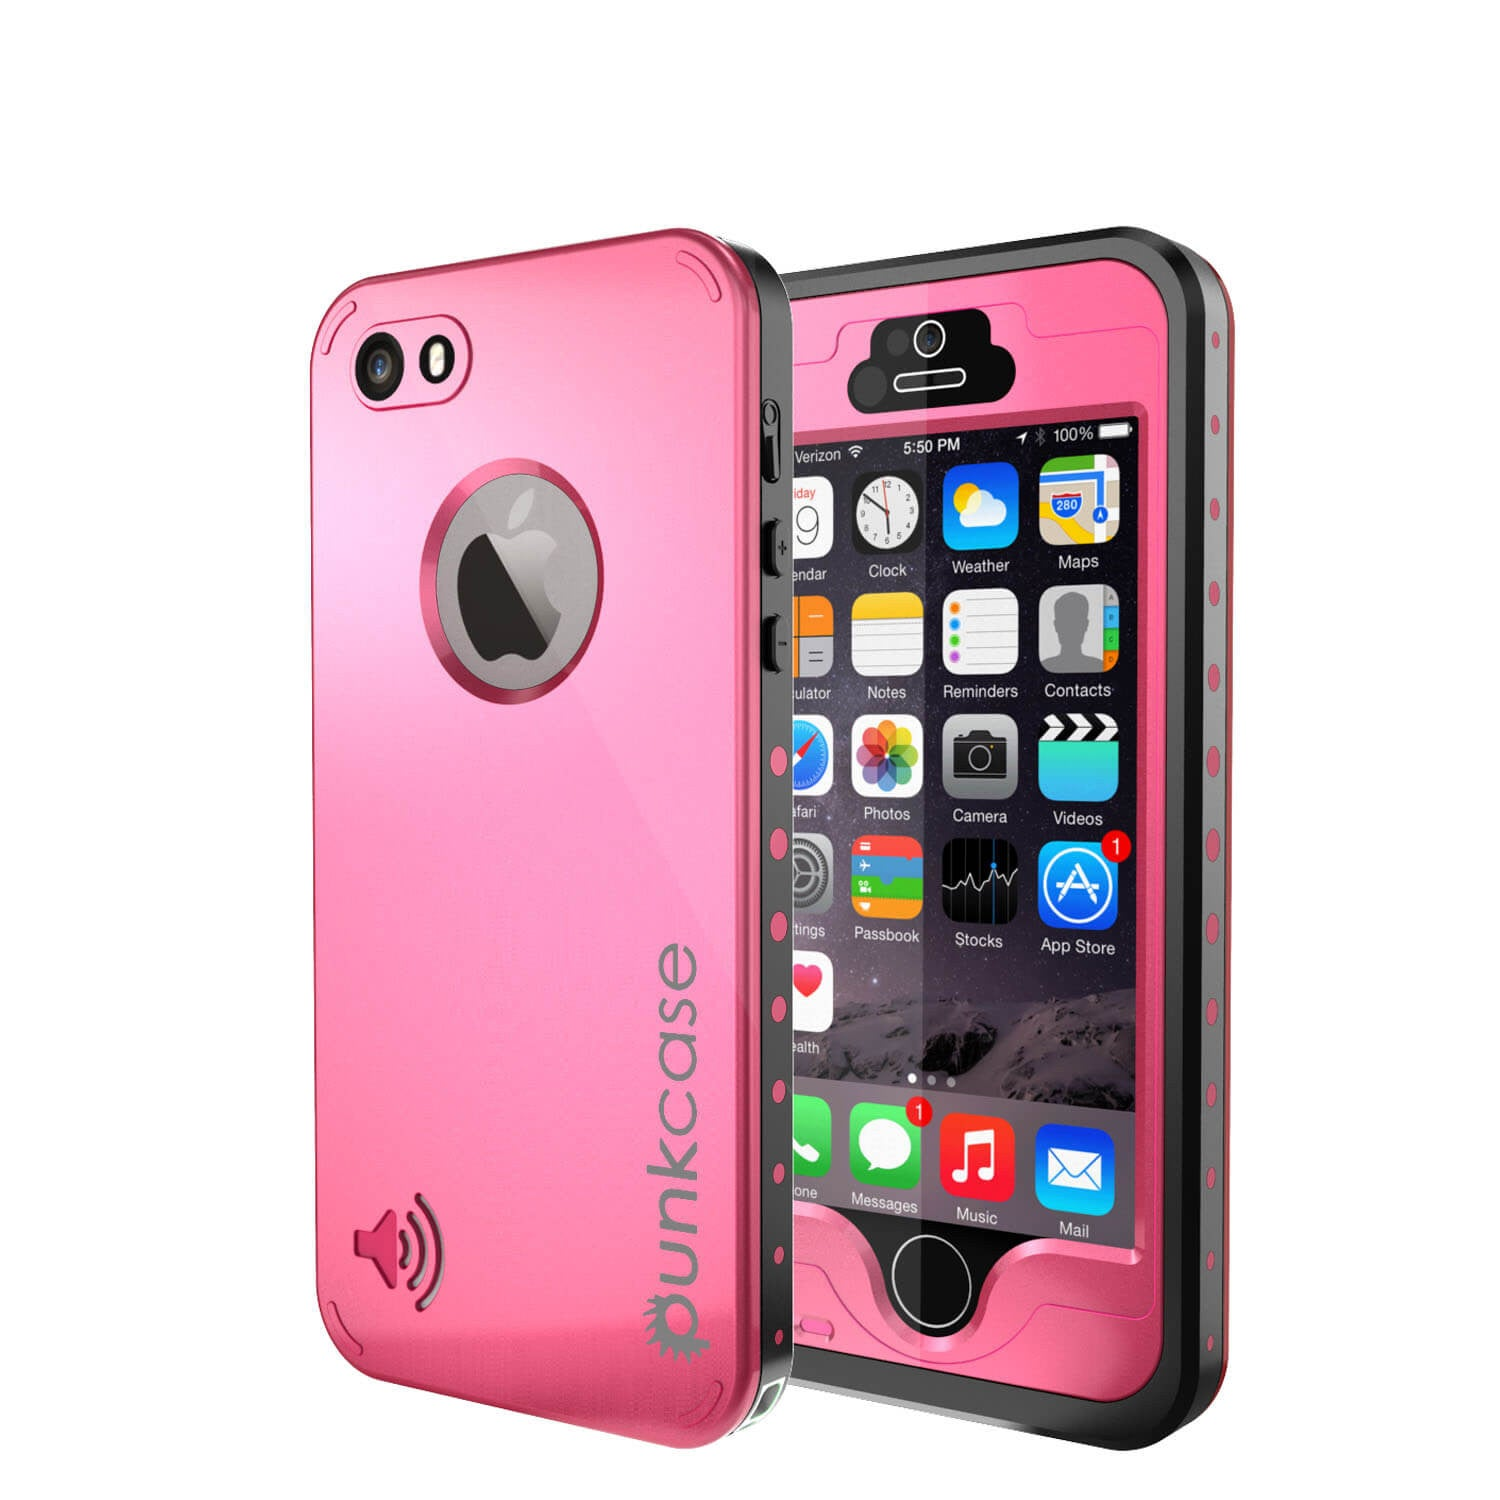 iPhone 5S/5 Waterproof Case, PunkCase StudStar Pink Case Water/Shock/Dirt Proof | Lifetime Warranty